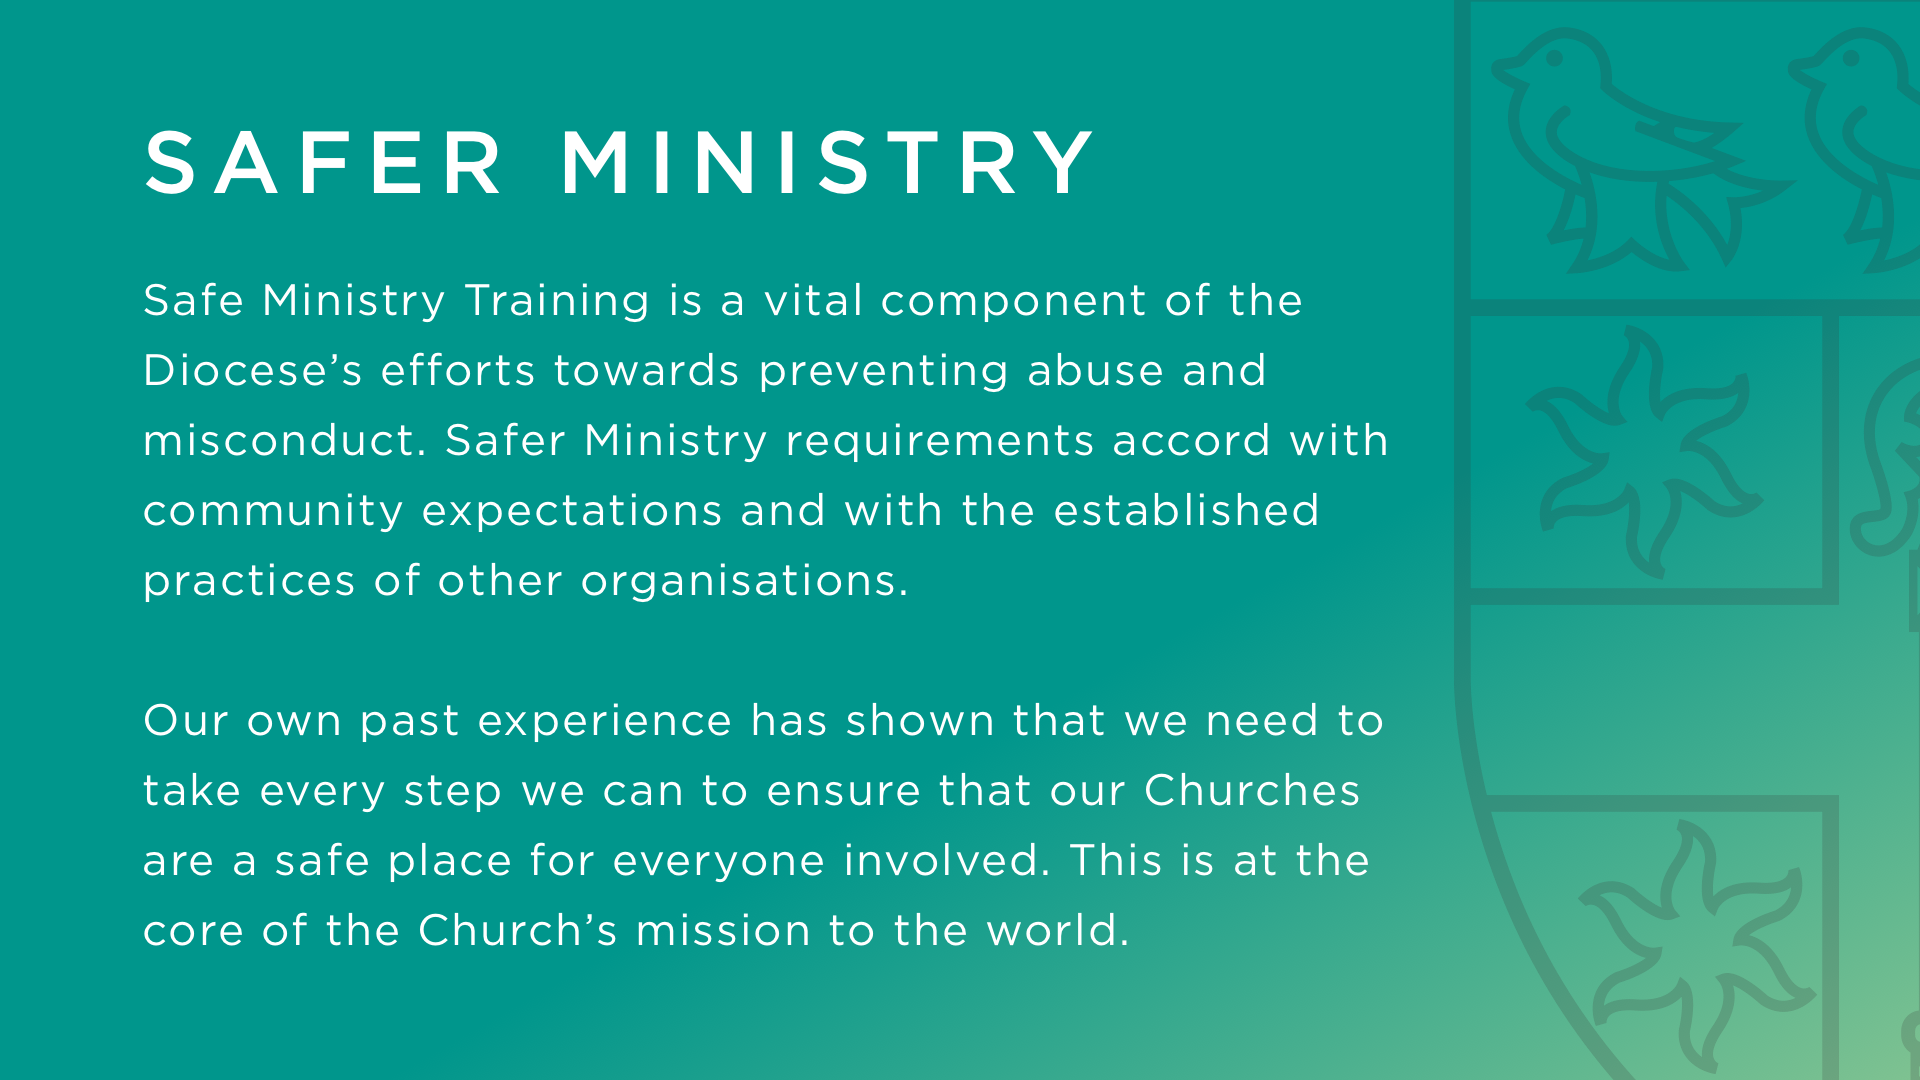 Download Safer Ministry Powerpoint (16:9)   Download Safer Ministry Powerpoint (4:3)   Download Safer Ministry Powerpoint image files   (16:9)   Download Safer Ministry Powerpoint image files (4:3)